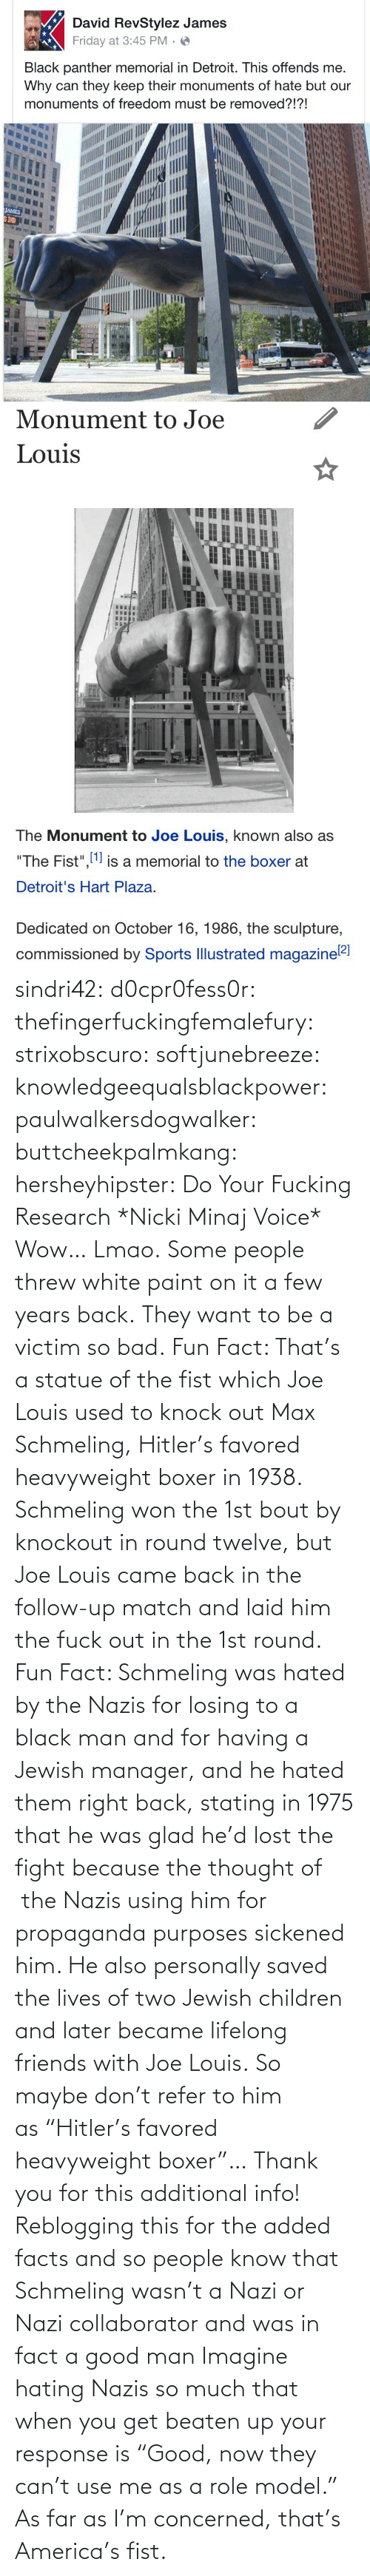 "knock: sindri42:  d0cpr0fess0r:  thefingerfuckingfemalefury:  strixobscuro:  softjunebreeze:  knowledgeequalsblackpower:  paulwalkersdogwalker:   buttcheekpalmkang:   hersheyhipster:  Do Your Fucking Research *Nicki Minaj Voice*    Wow… Lmao.   Some people threw white paint on it a few years back.   They want to be a victim so bad.  Fun Fact: That's a statue of the fist which Joe Louis used to knock out Max Schmeling, Hitler's favored heavyweight boxer in 1938. Schmeling won the 1st bout by knockout in round twelve, but Joe Louis came back in the follow-up match and laid him the fuck out in the 1st round.  Fun Fact: Schmeling was hated by the Nazis for losing to a black man and for having a Jewish manager, and he hated them right back, stating in 1975 that he was glad he'd lost the fight because the thought of  the Nazis using him for propaganda purposes sickened him. He also personally saved the lives of two Jewish children and later became lifelong friends with Joe Louis. So maybe don't refer to him as ""Hitler's favored heavyweight boxer""…  Thank you for this additional info! Reblogging this for the added facts and so people know that Schmeling wasn't a Nazi or Nazi collaborator and was in fact a good man   Imagine hating Nazis so much that when you get beaten up your response is ""Good, now they can't use me as a role model.""  As far as I'm concerned, that's America's fist."